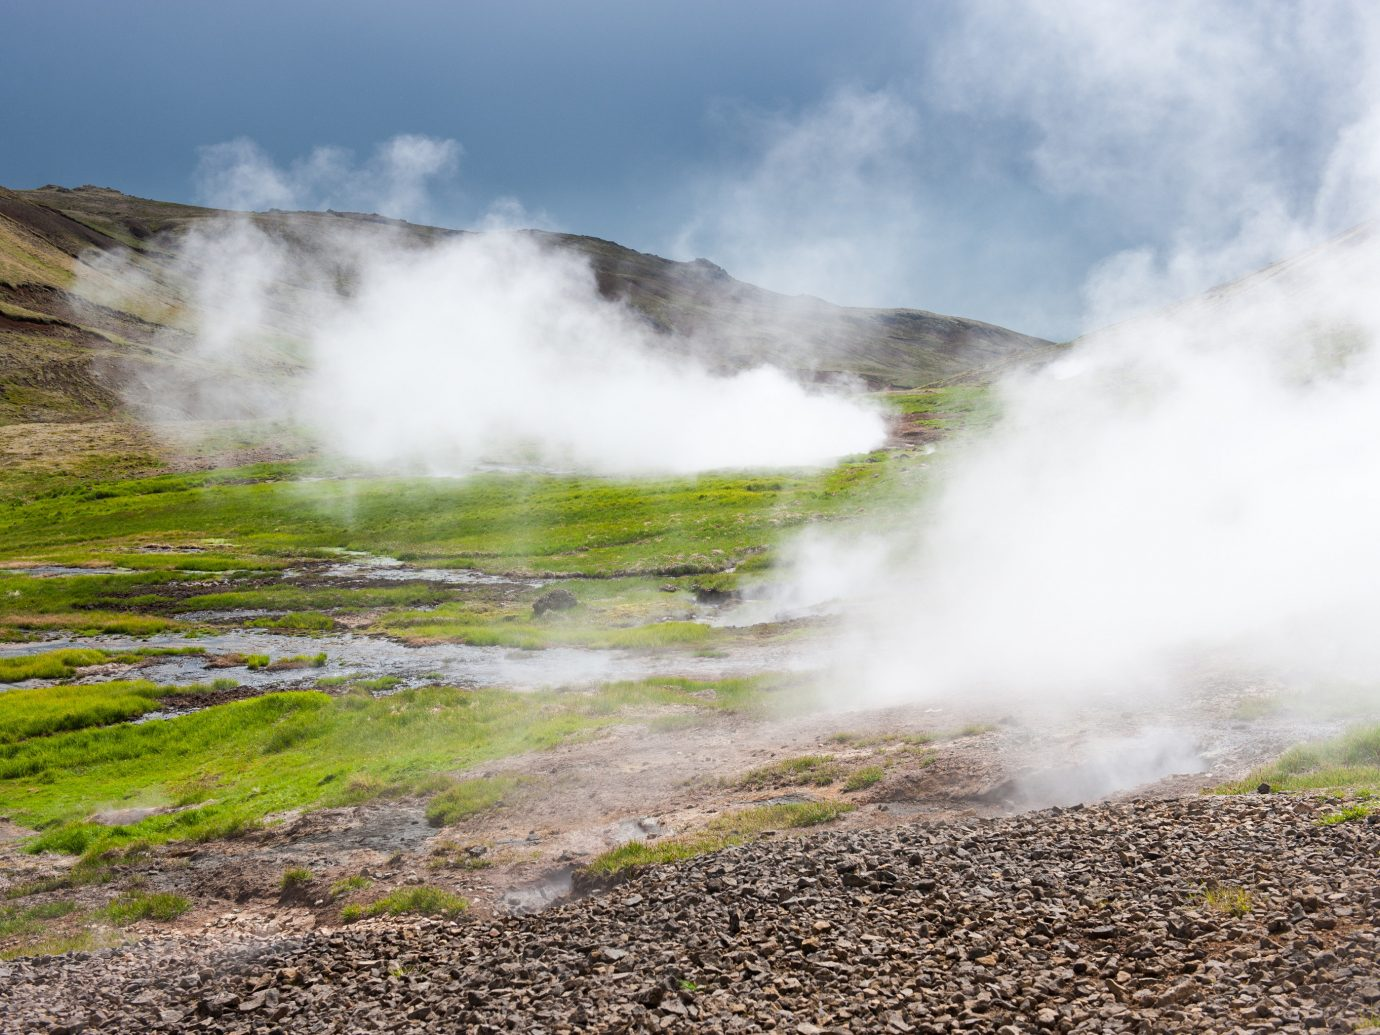 outdoor Nature sky spring ground grass geographical feature landform body of water atmospheric phenomenon wilderness water geyser mountain landscape rock dirt smoke water feature stream Sea